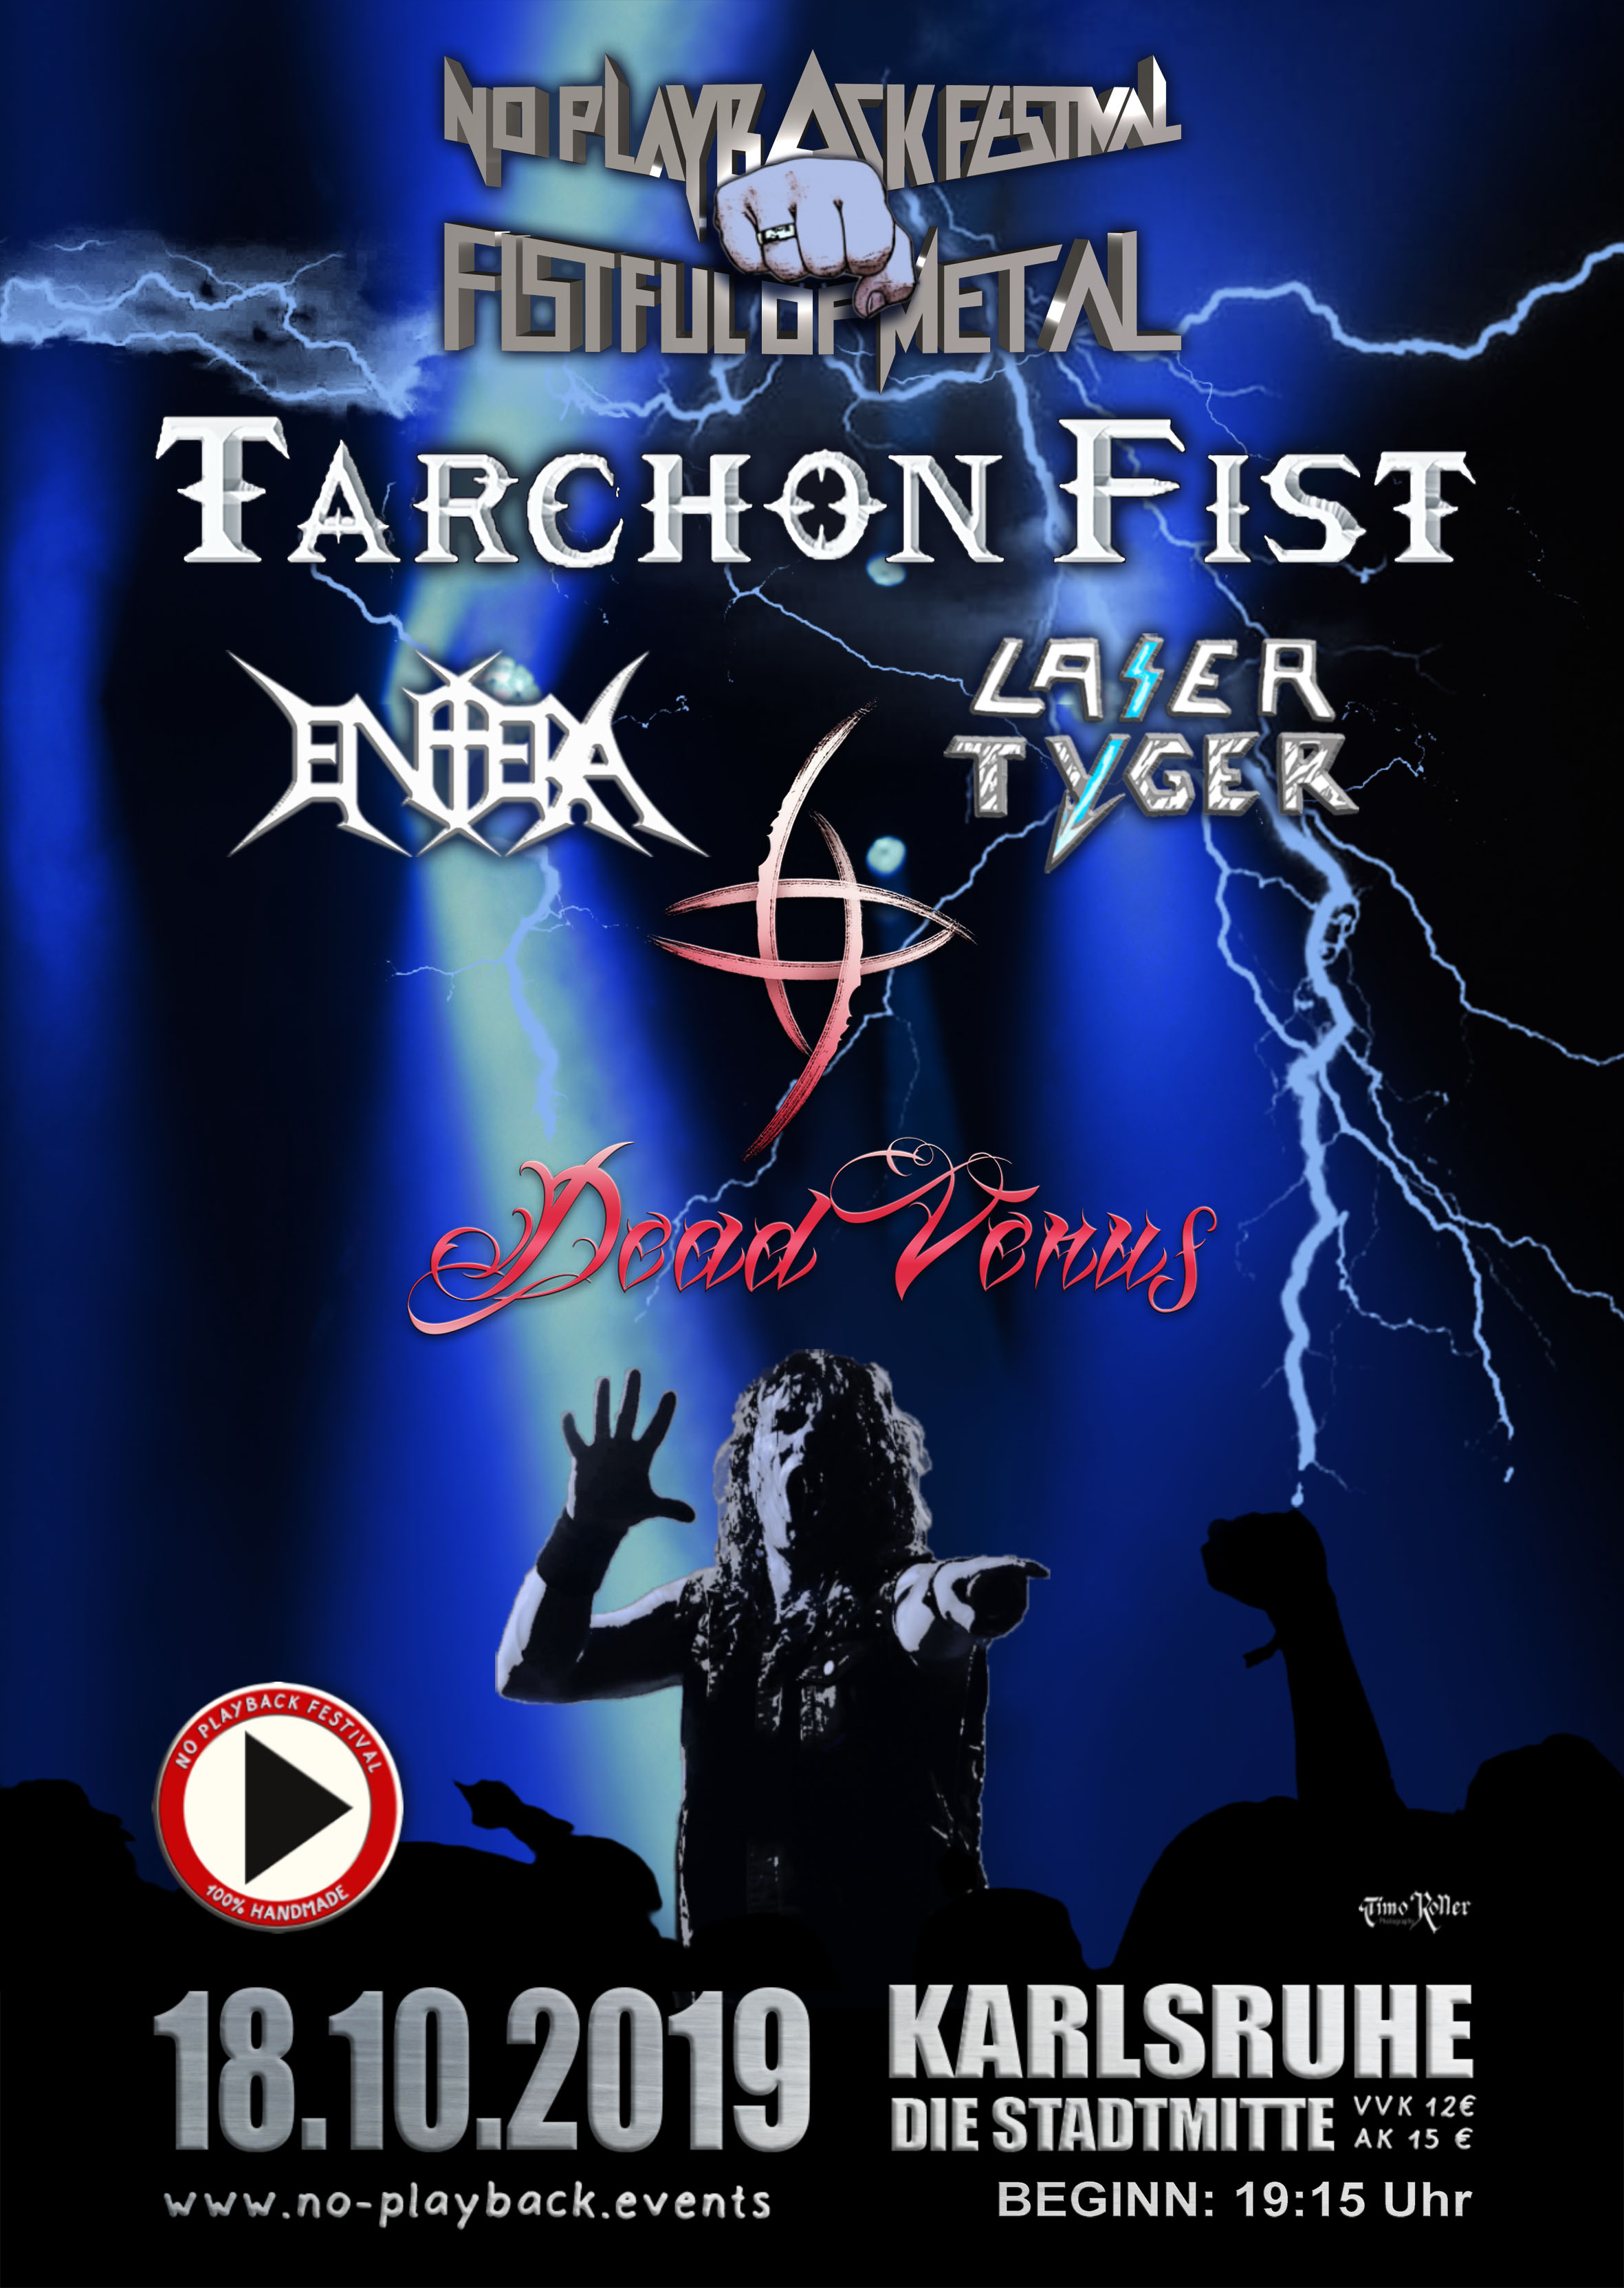 No Playback Festival presents Tarchon Fist